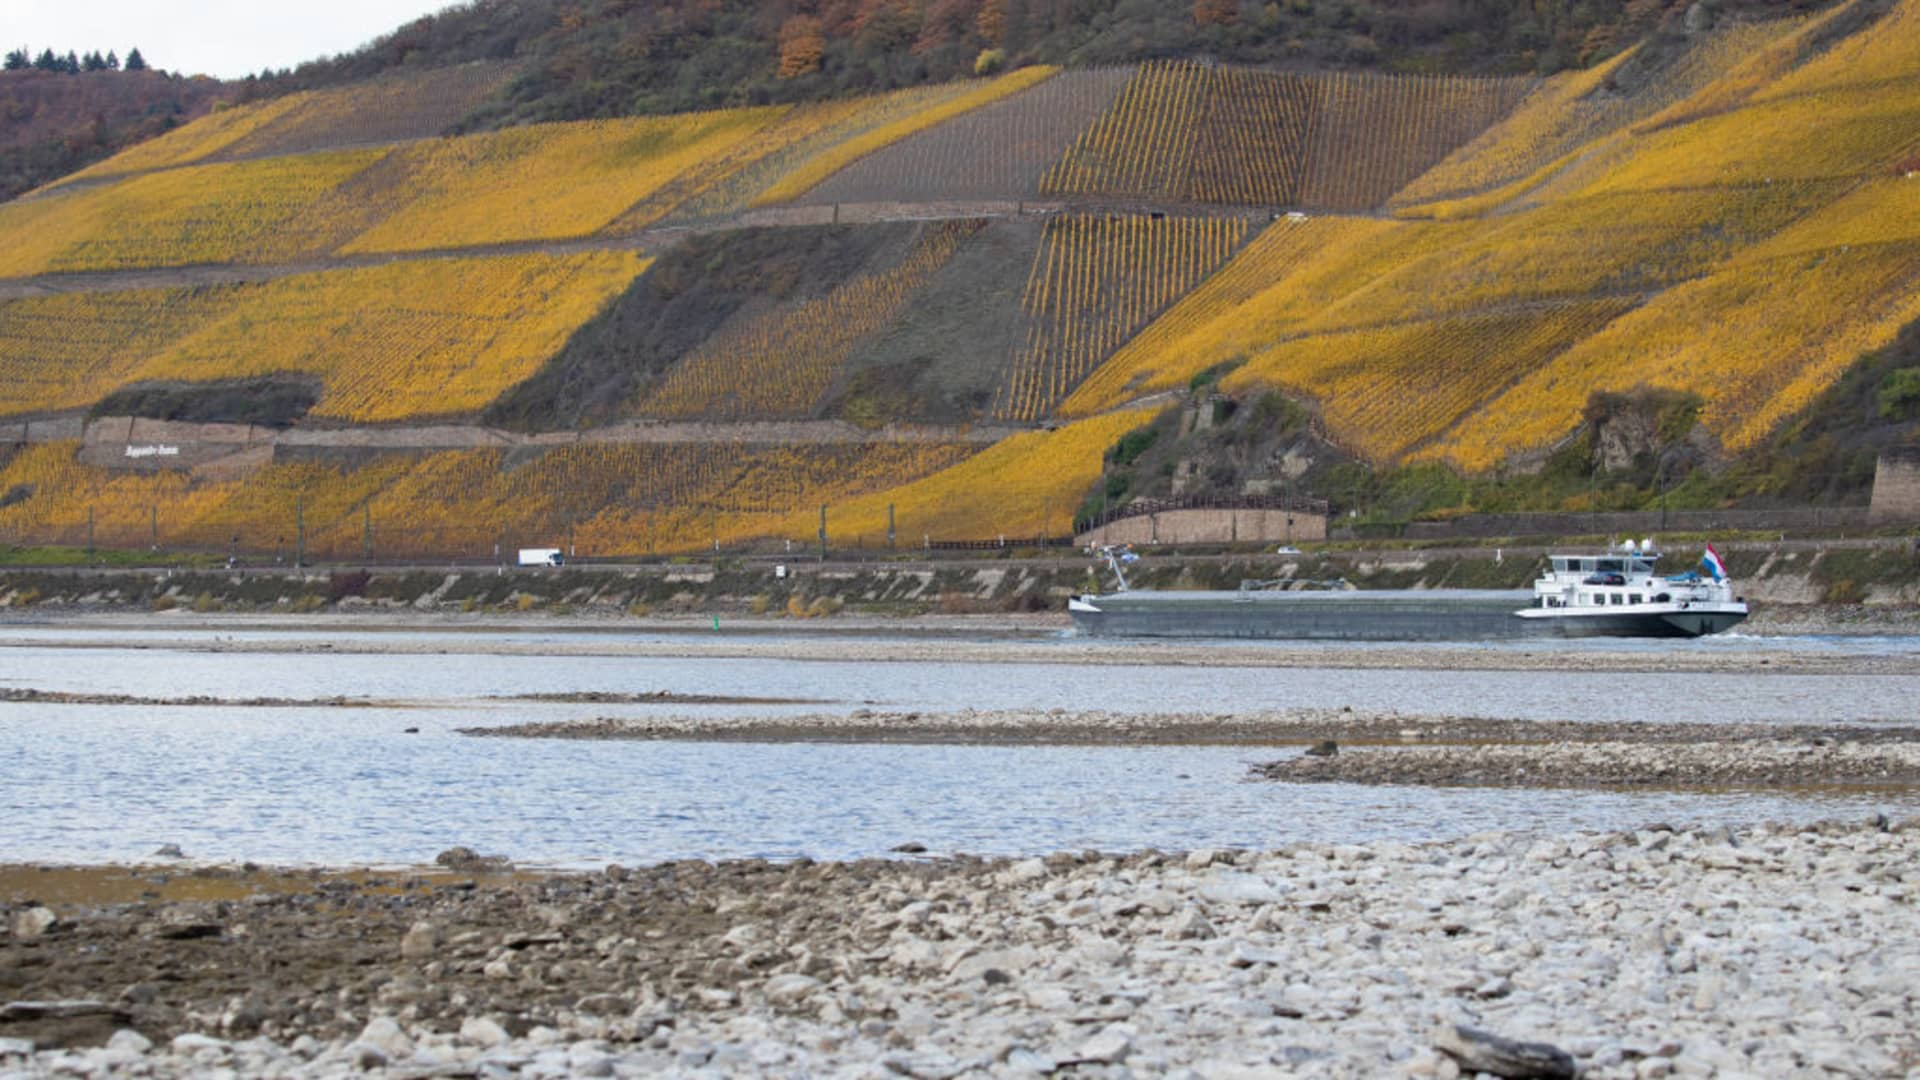 Half loaded cargo ships pass by the low water in the River Rhine along the vineyards on November 13, 2018 in Osterspai near Sankt Goarshausen, Germany. Summer heat wave in Germany as well unfavorable wind conditions, and no rain left the Rhine - which begins in the Swiss Alps, runs through Germany, and empties into the North Sea - at record low water levels.